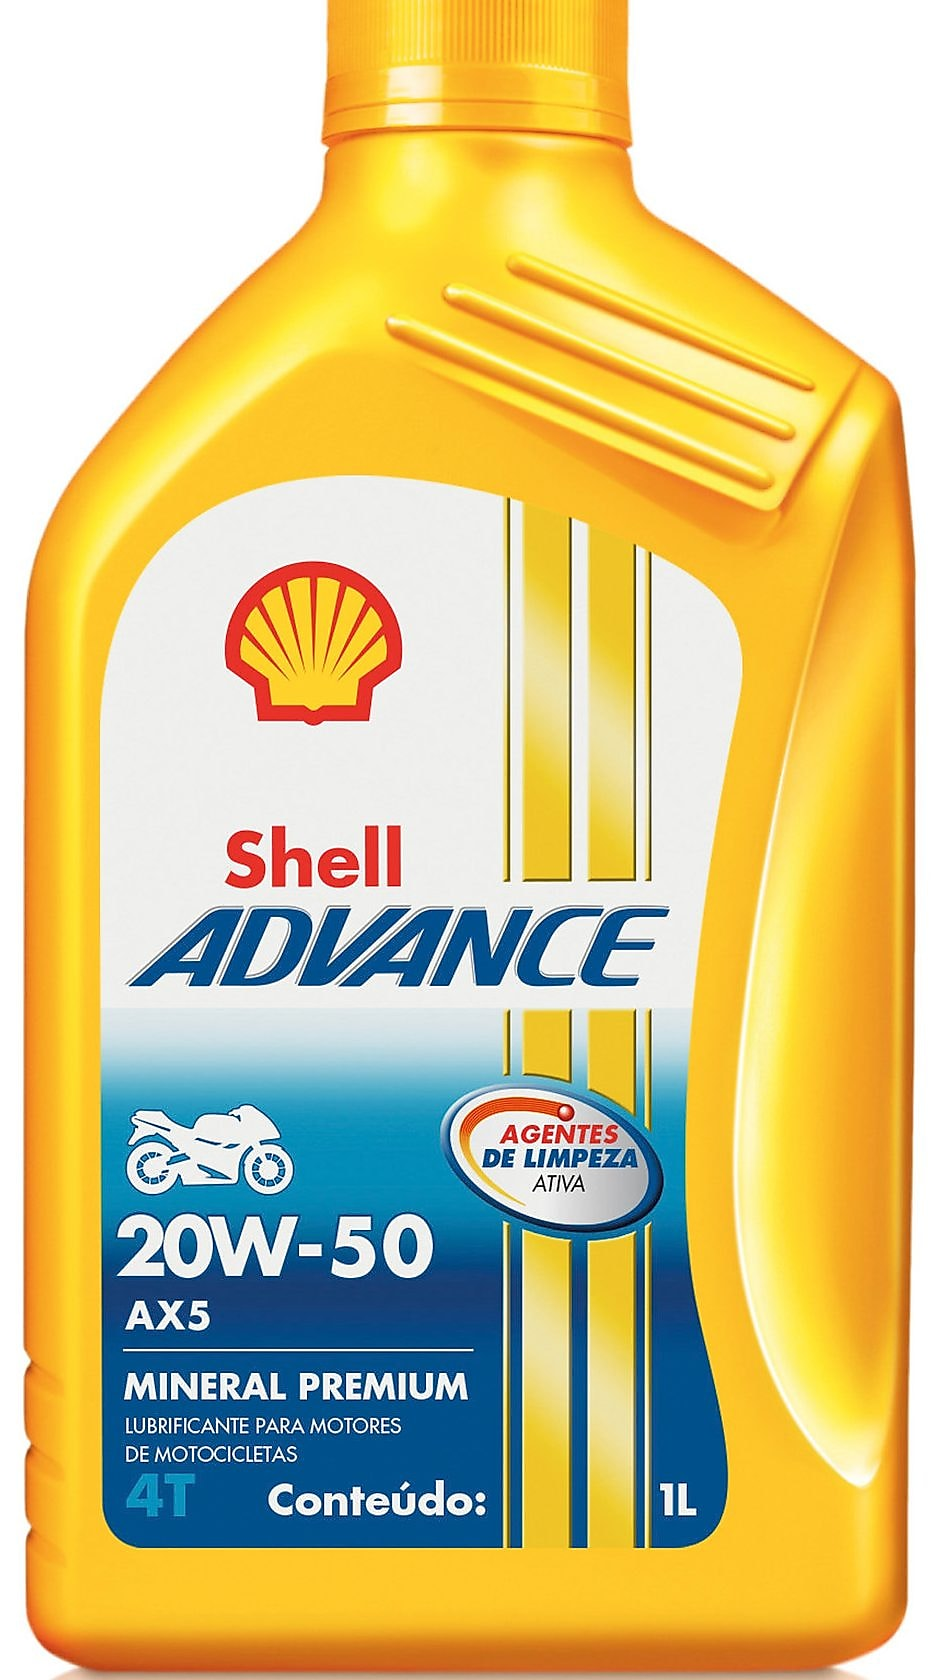 Shell Advance AX5 packshot